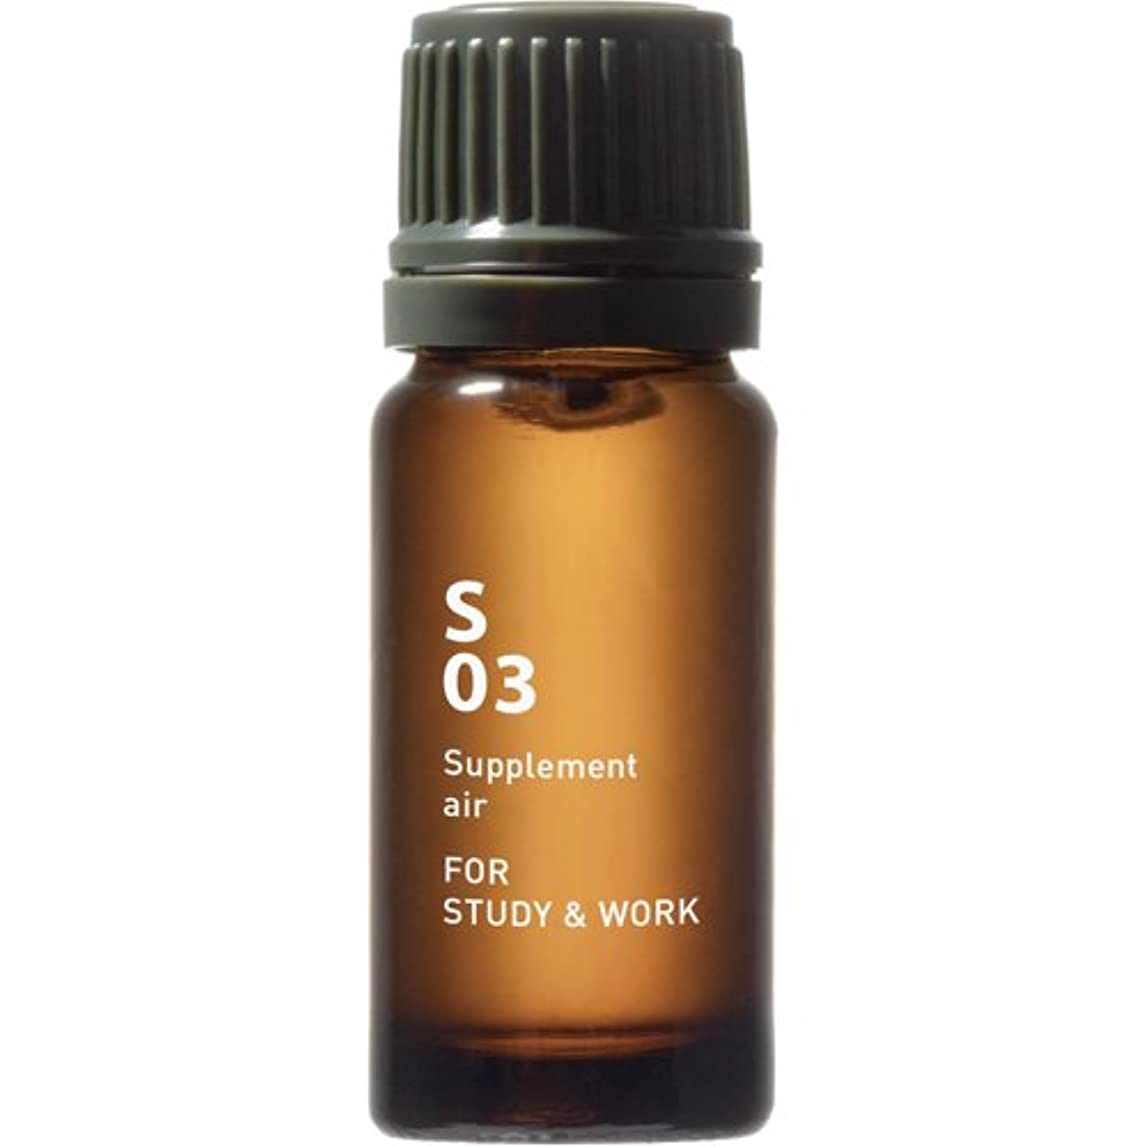 フォーマル地震嫌いS03 FOR STUDY & WORK Supplement air 10ml